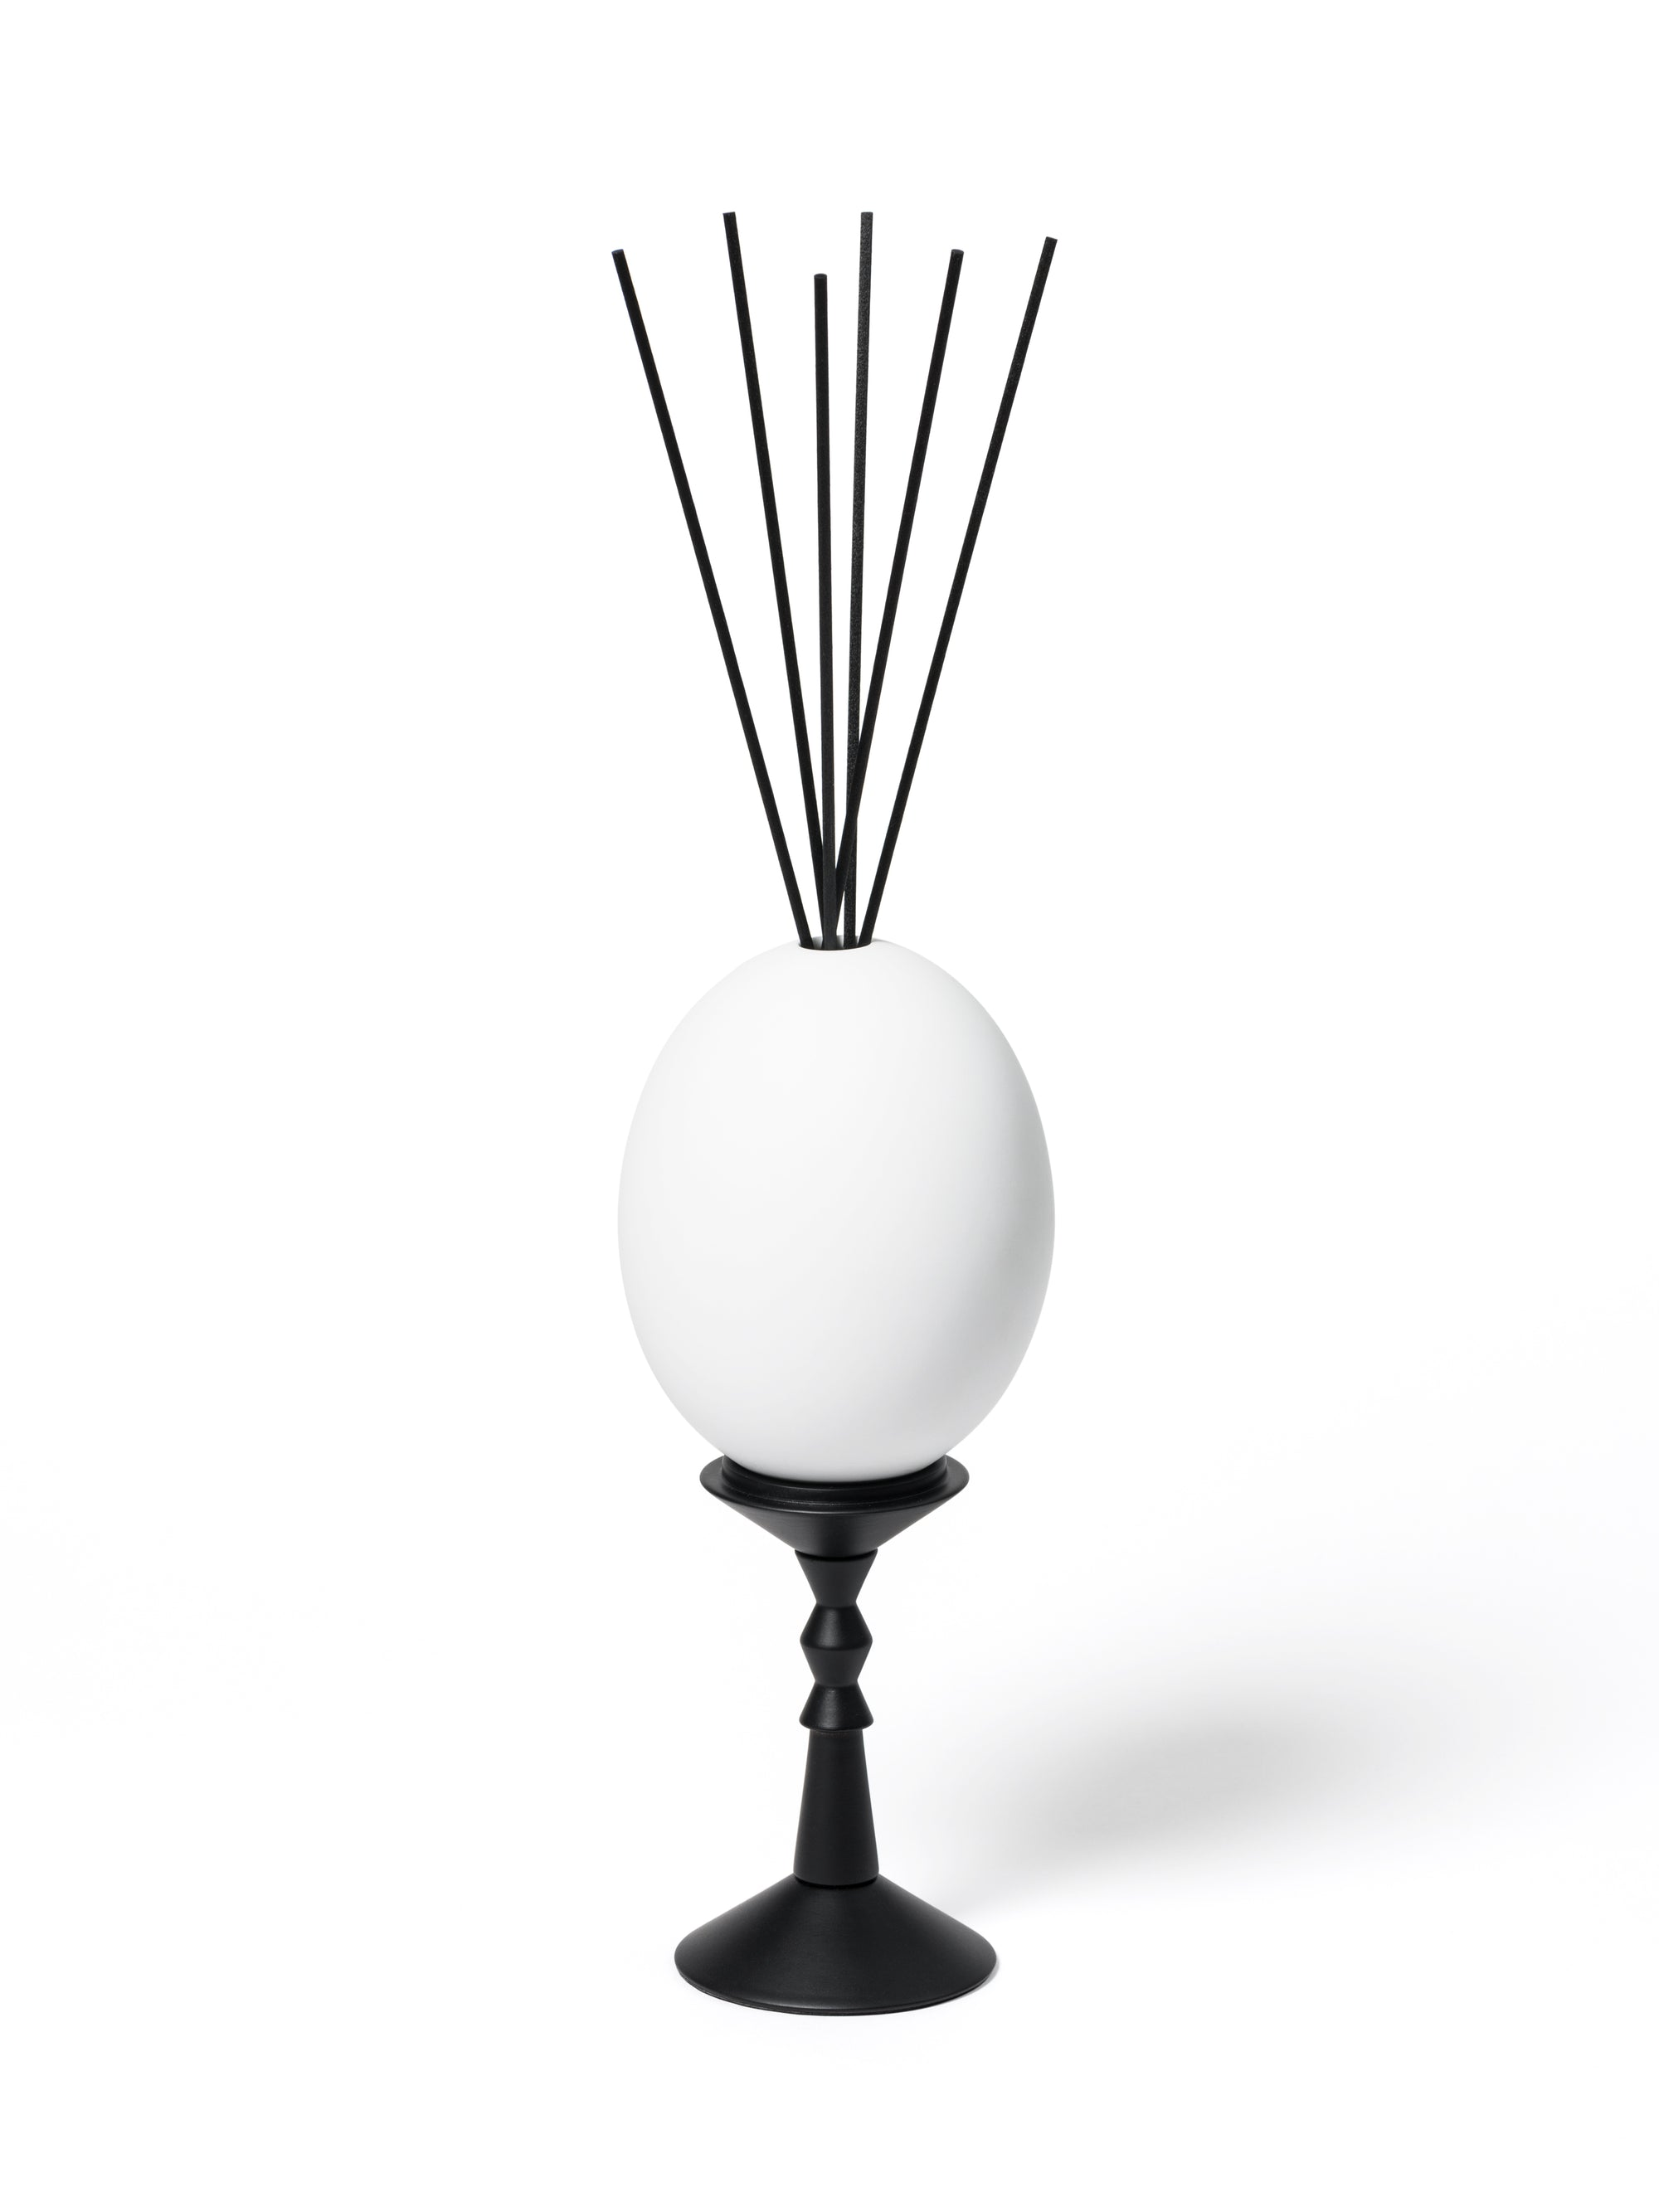 L'OEuf Egg Diffuser Cyrnos from Cire Trudon